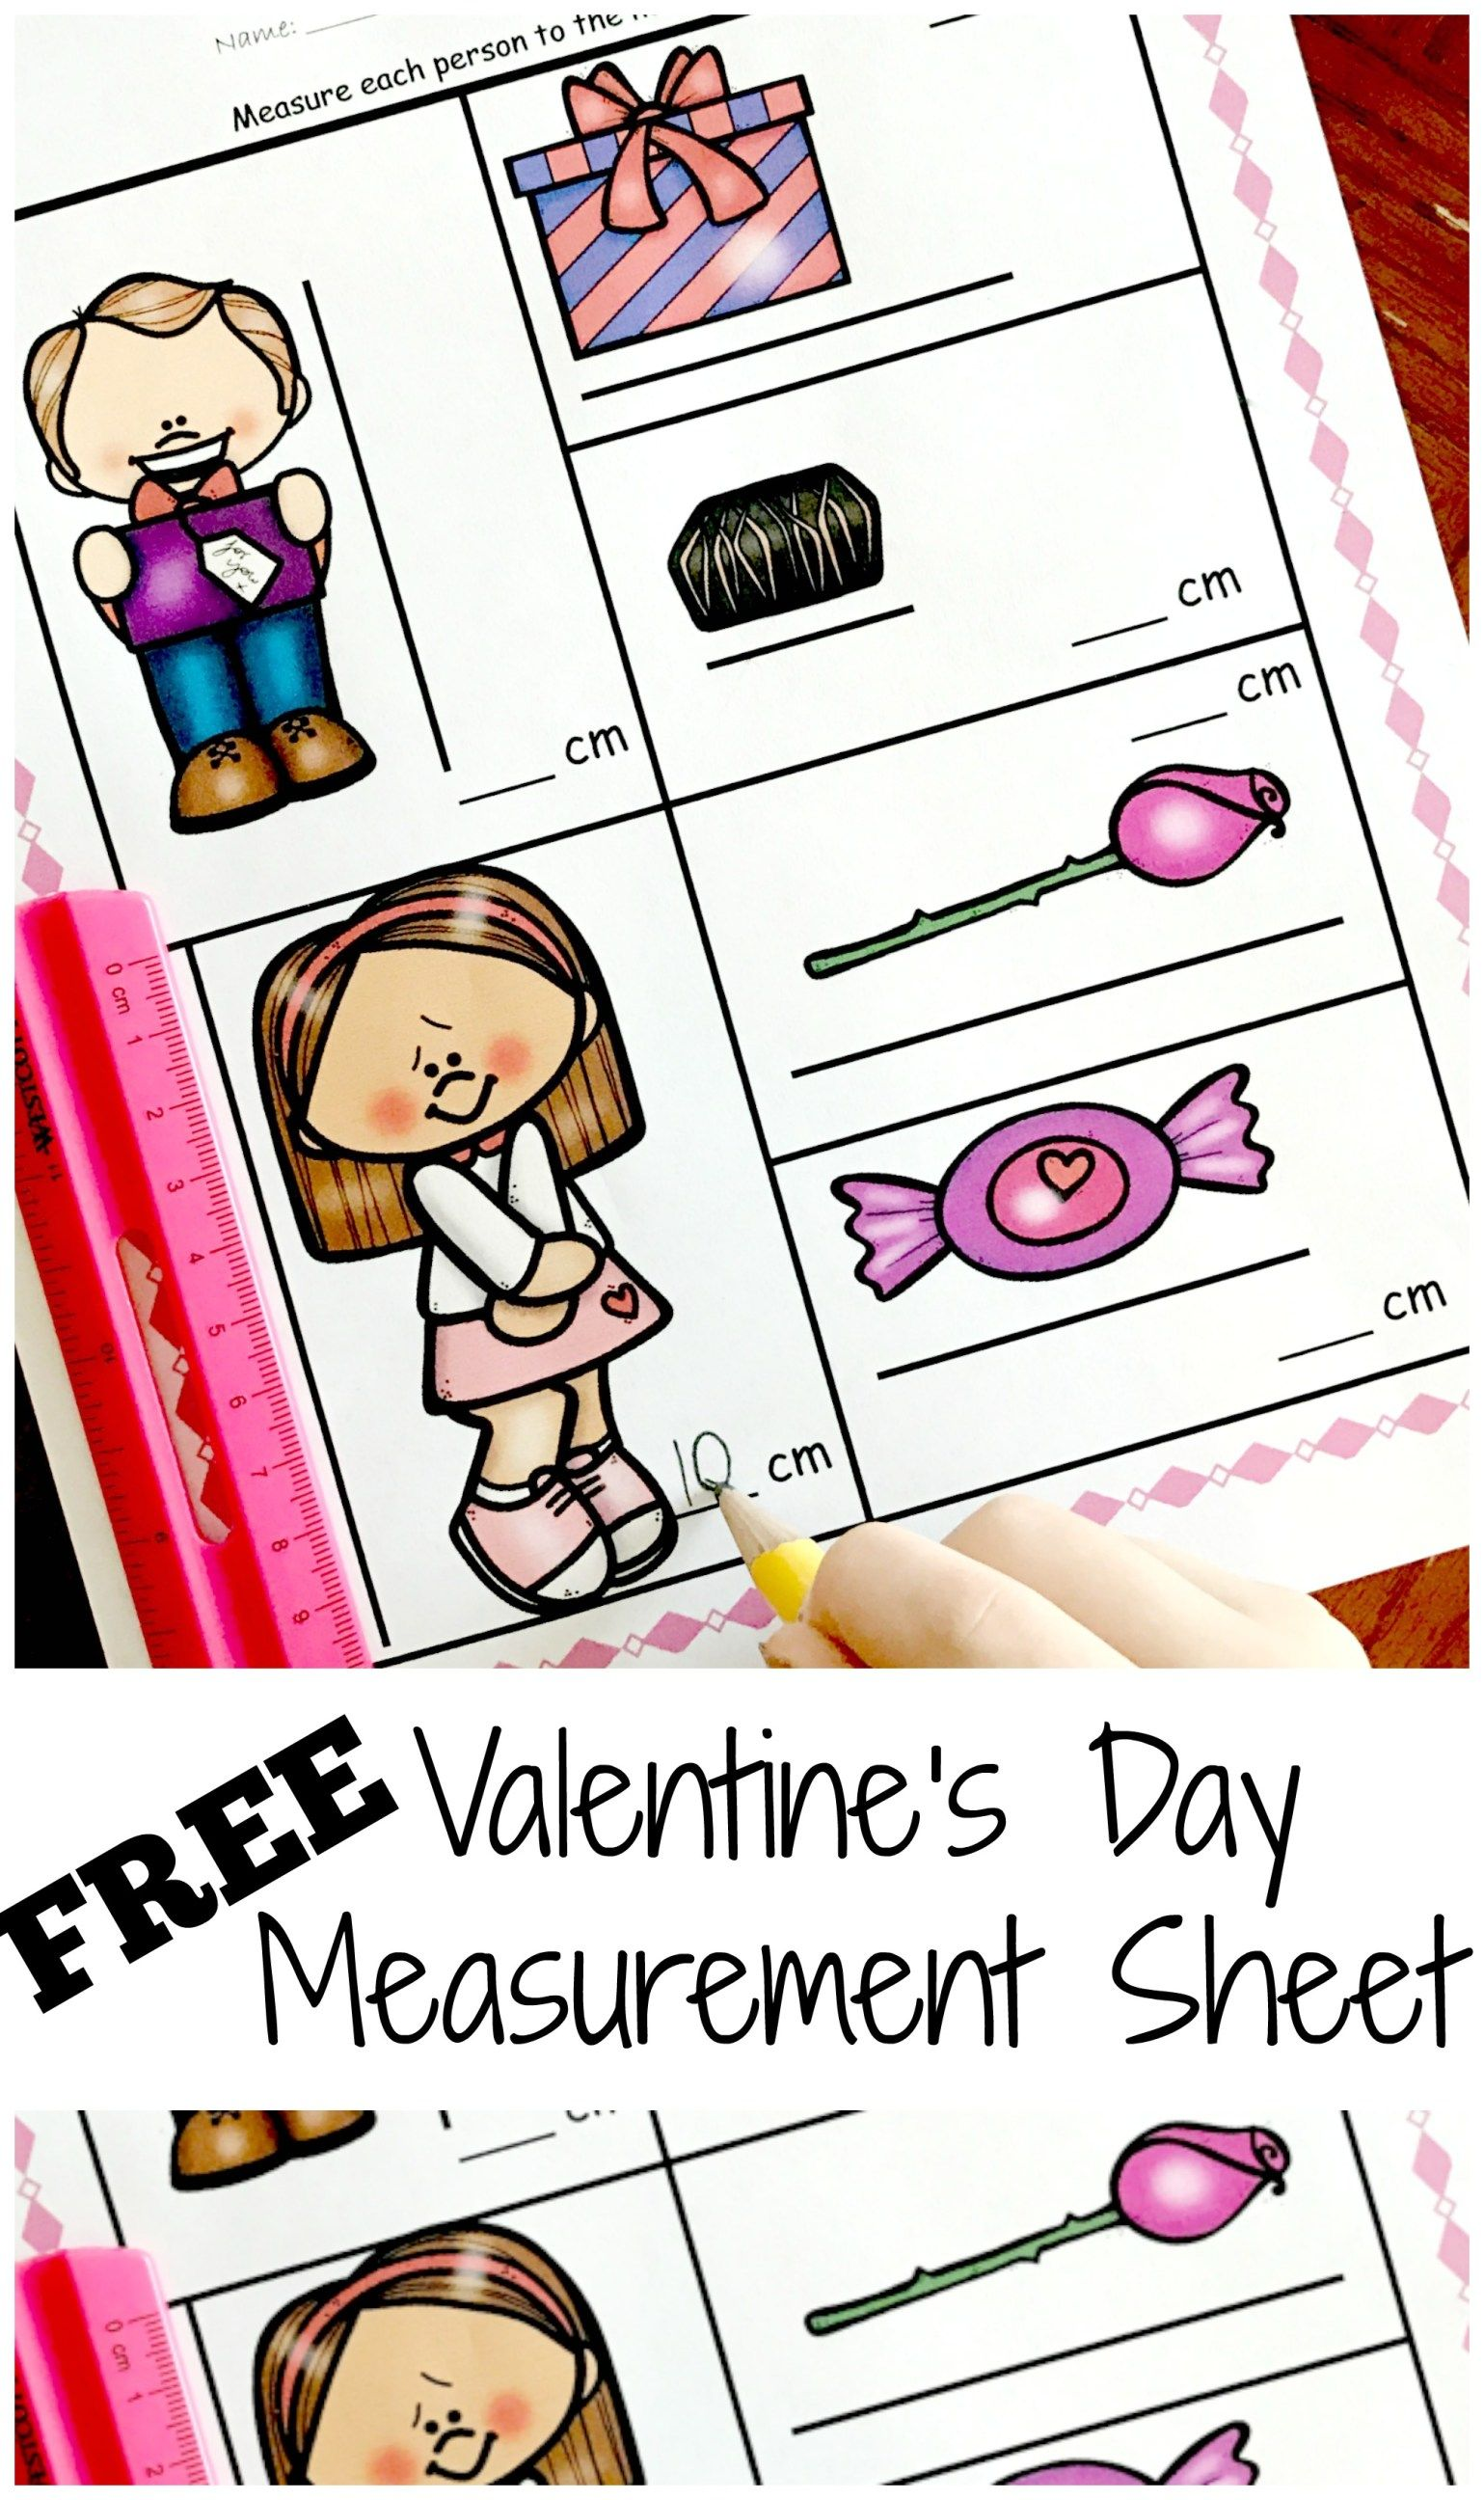 Free Measuring Centimeters Worksheet With A Valentine S